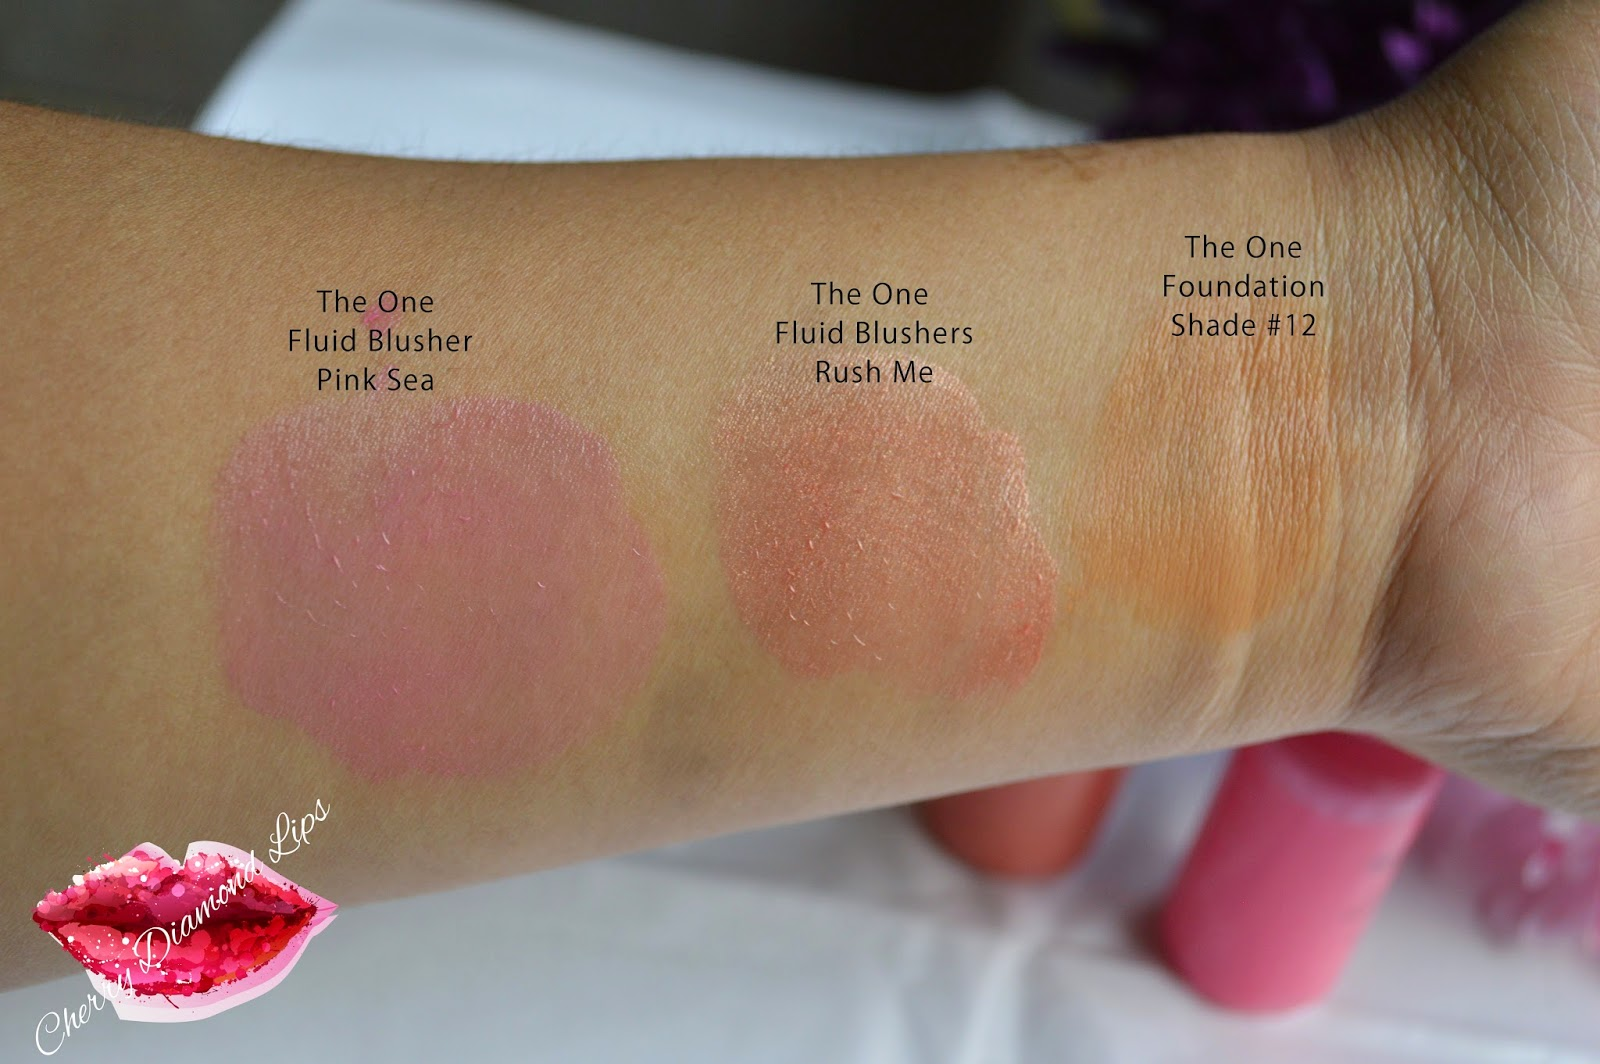 Swatches of liquid Blushes in Pink Sea, Rush Me by MUR